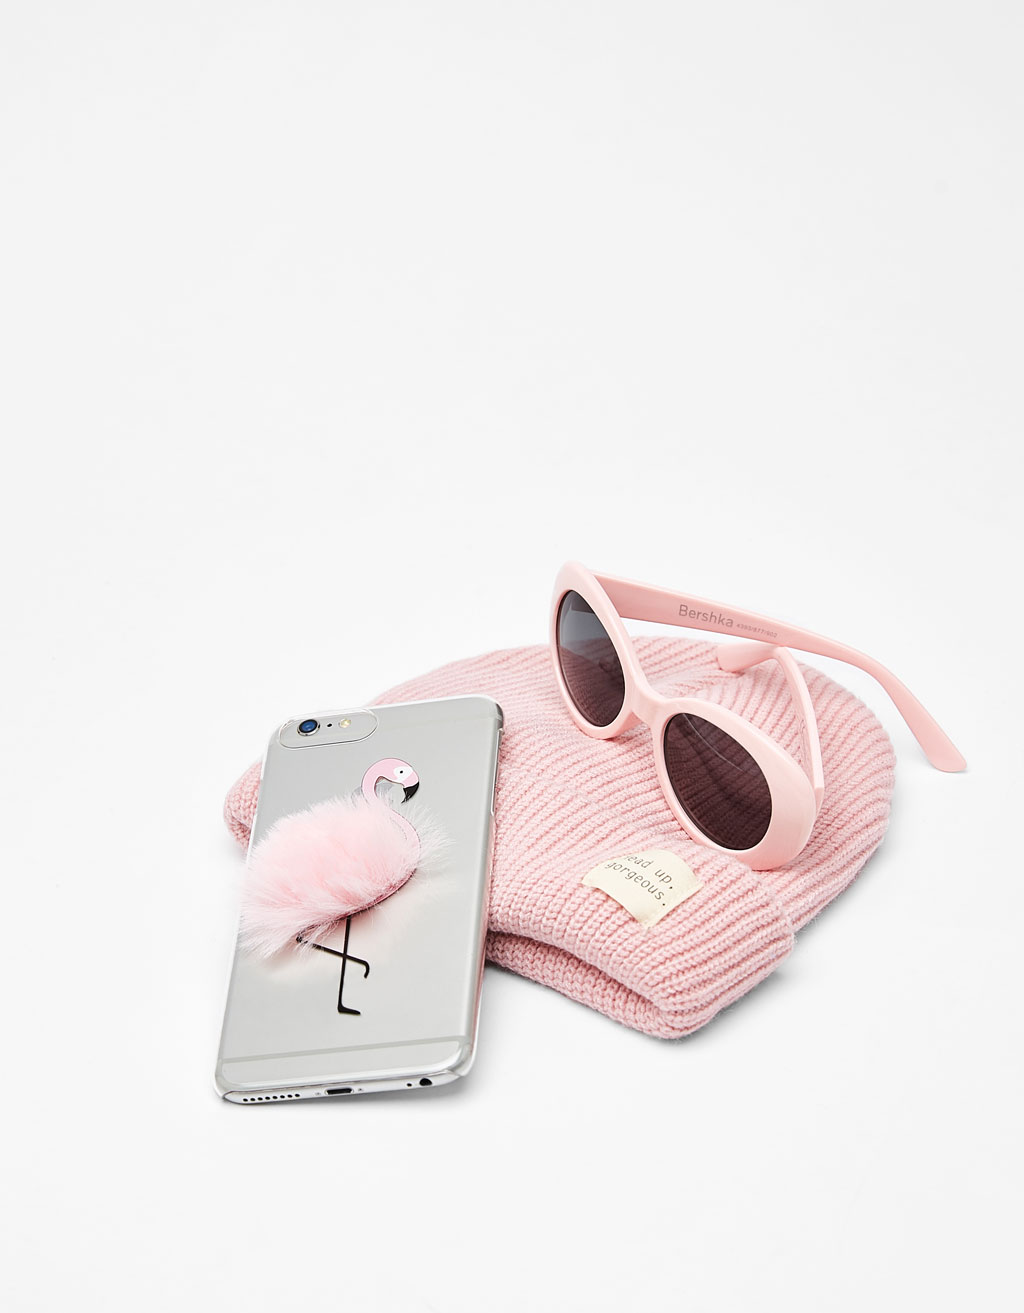 Ovitek s flamingom s cofom za iPhone 6plus/7plus